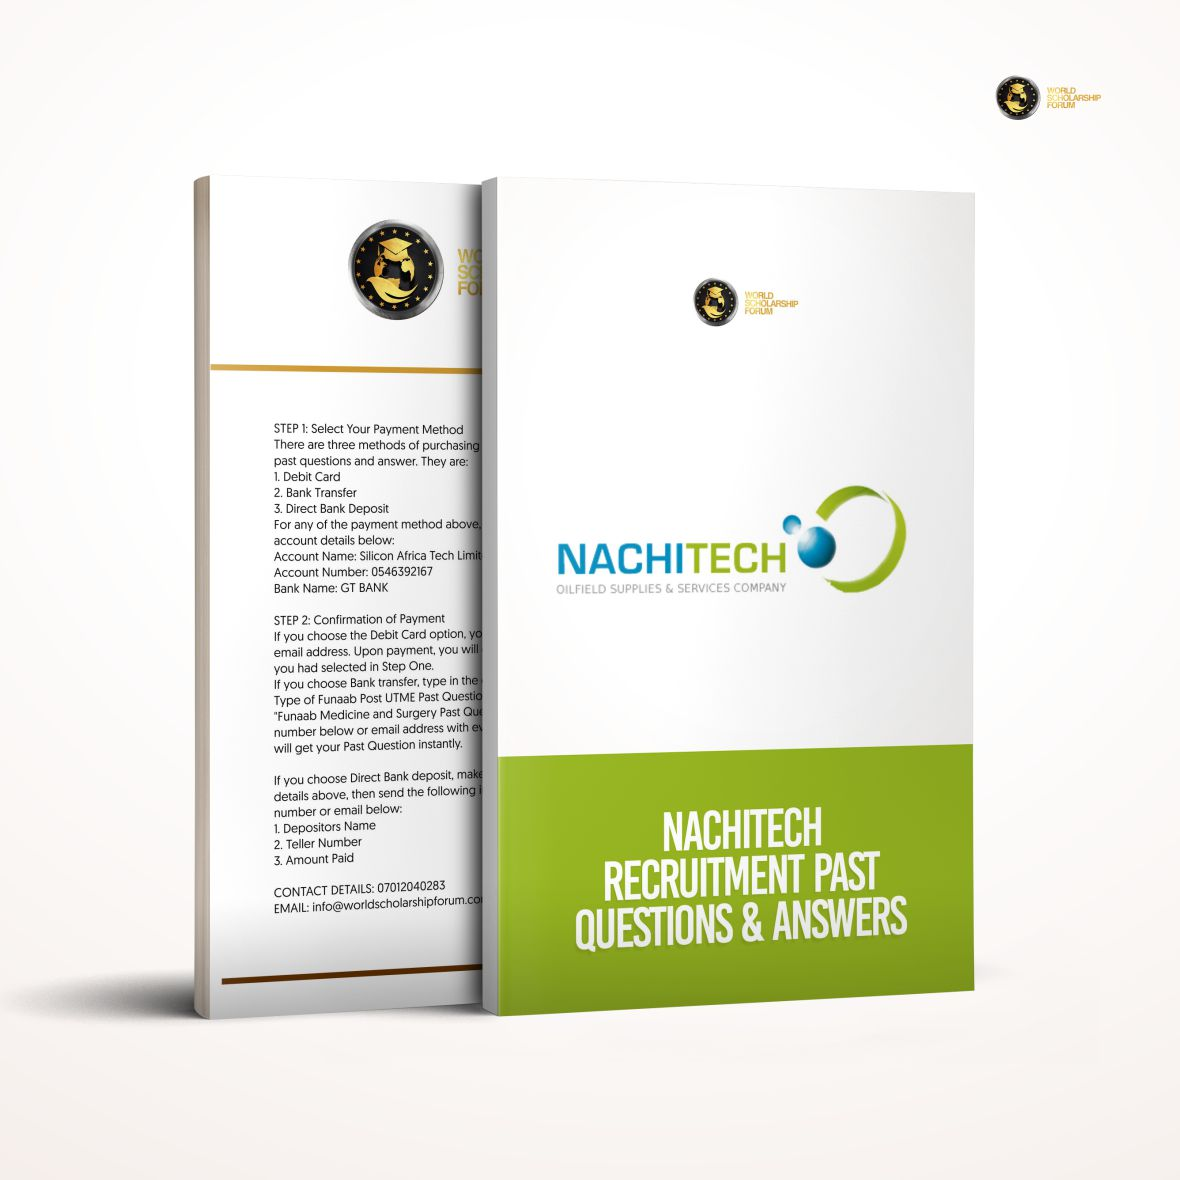 nachitech-recruitment-past-questions-answers